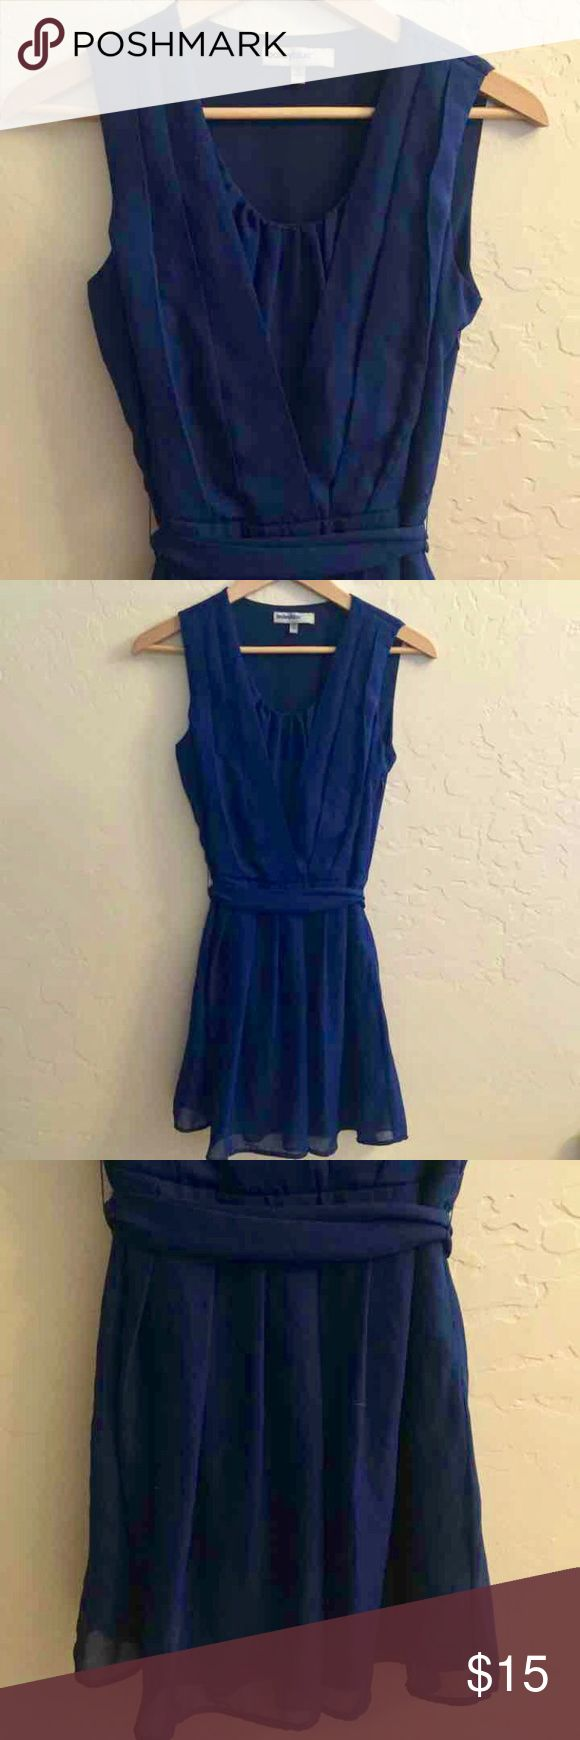 Beautiful Flowy Navy Chiffon Dress! Mid-length, tie waist, navy chiffon dress. Hangs beautifully. Great cut and gathers on the top flow into a beautiful skirt. Beautiful color on anyone! I lightened up the first few pics to show details. Color is closest to last pic. Dresses Midi